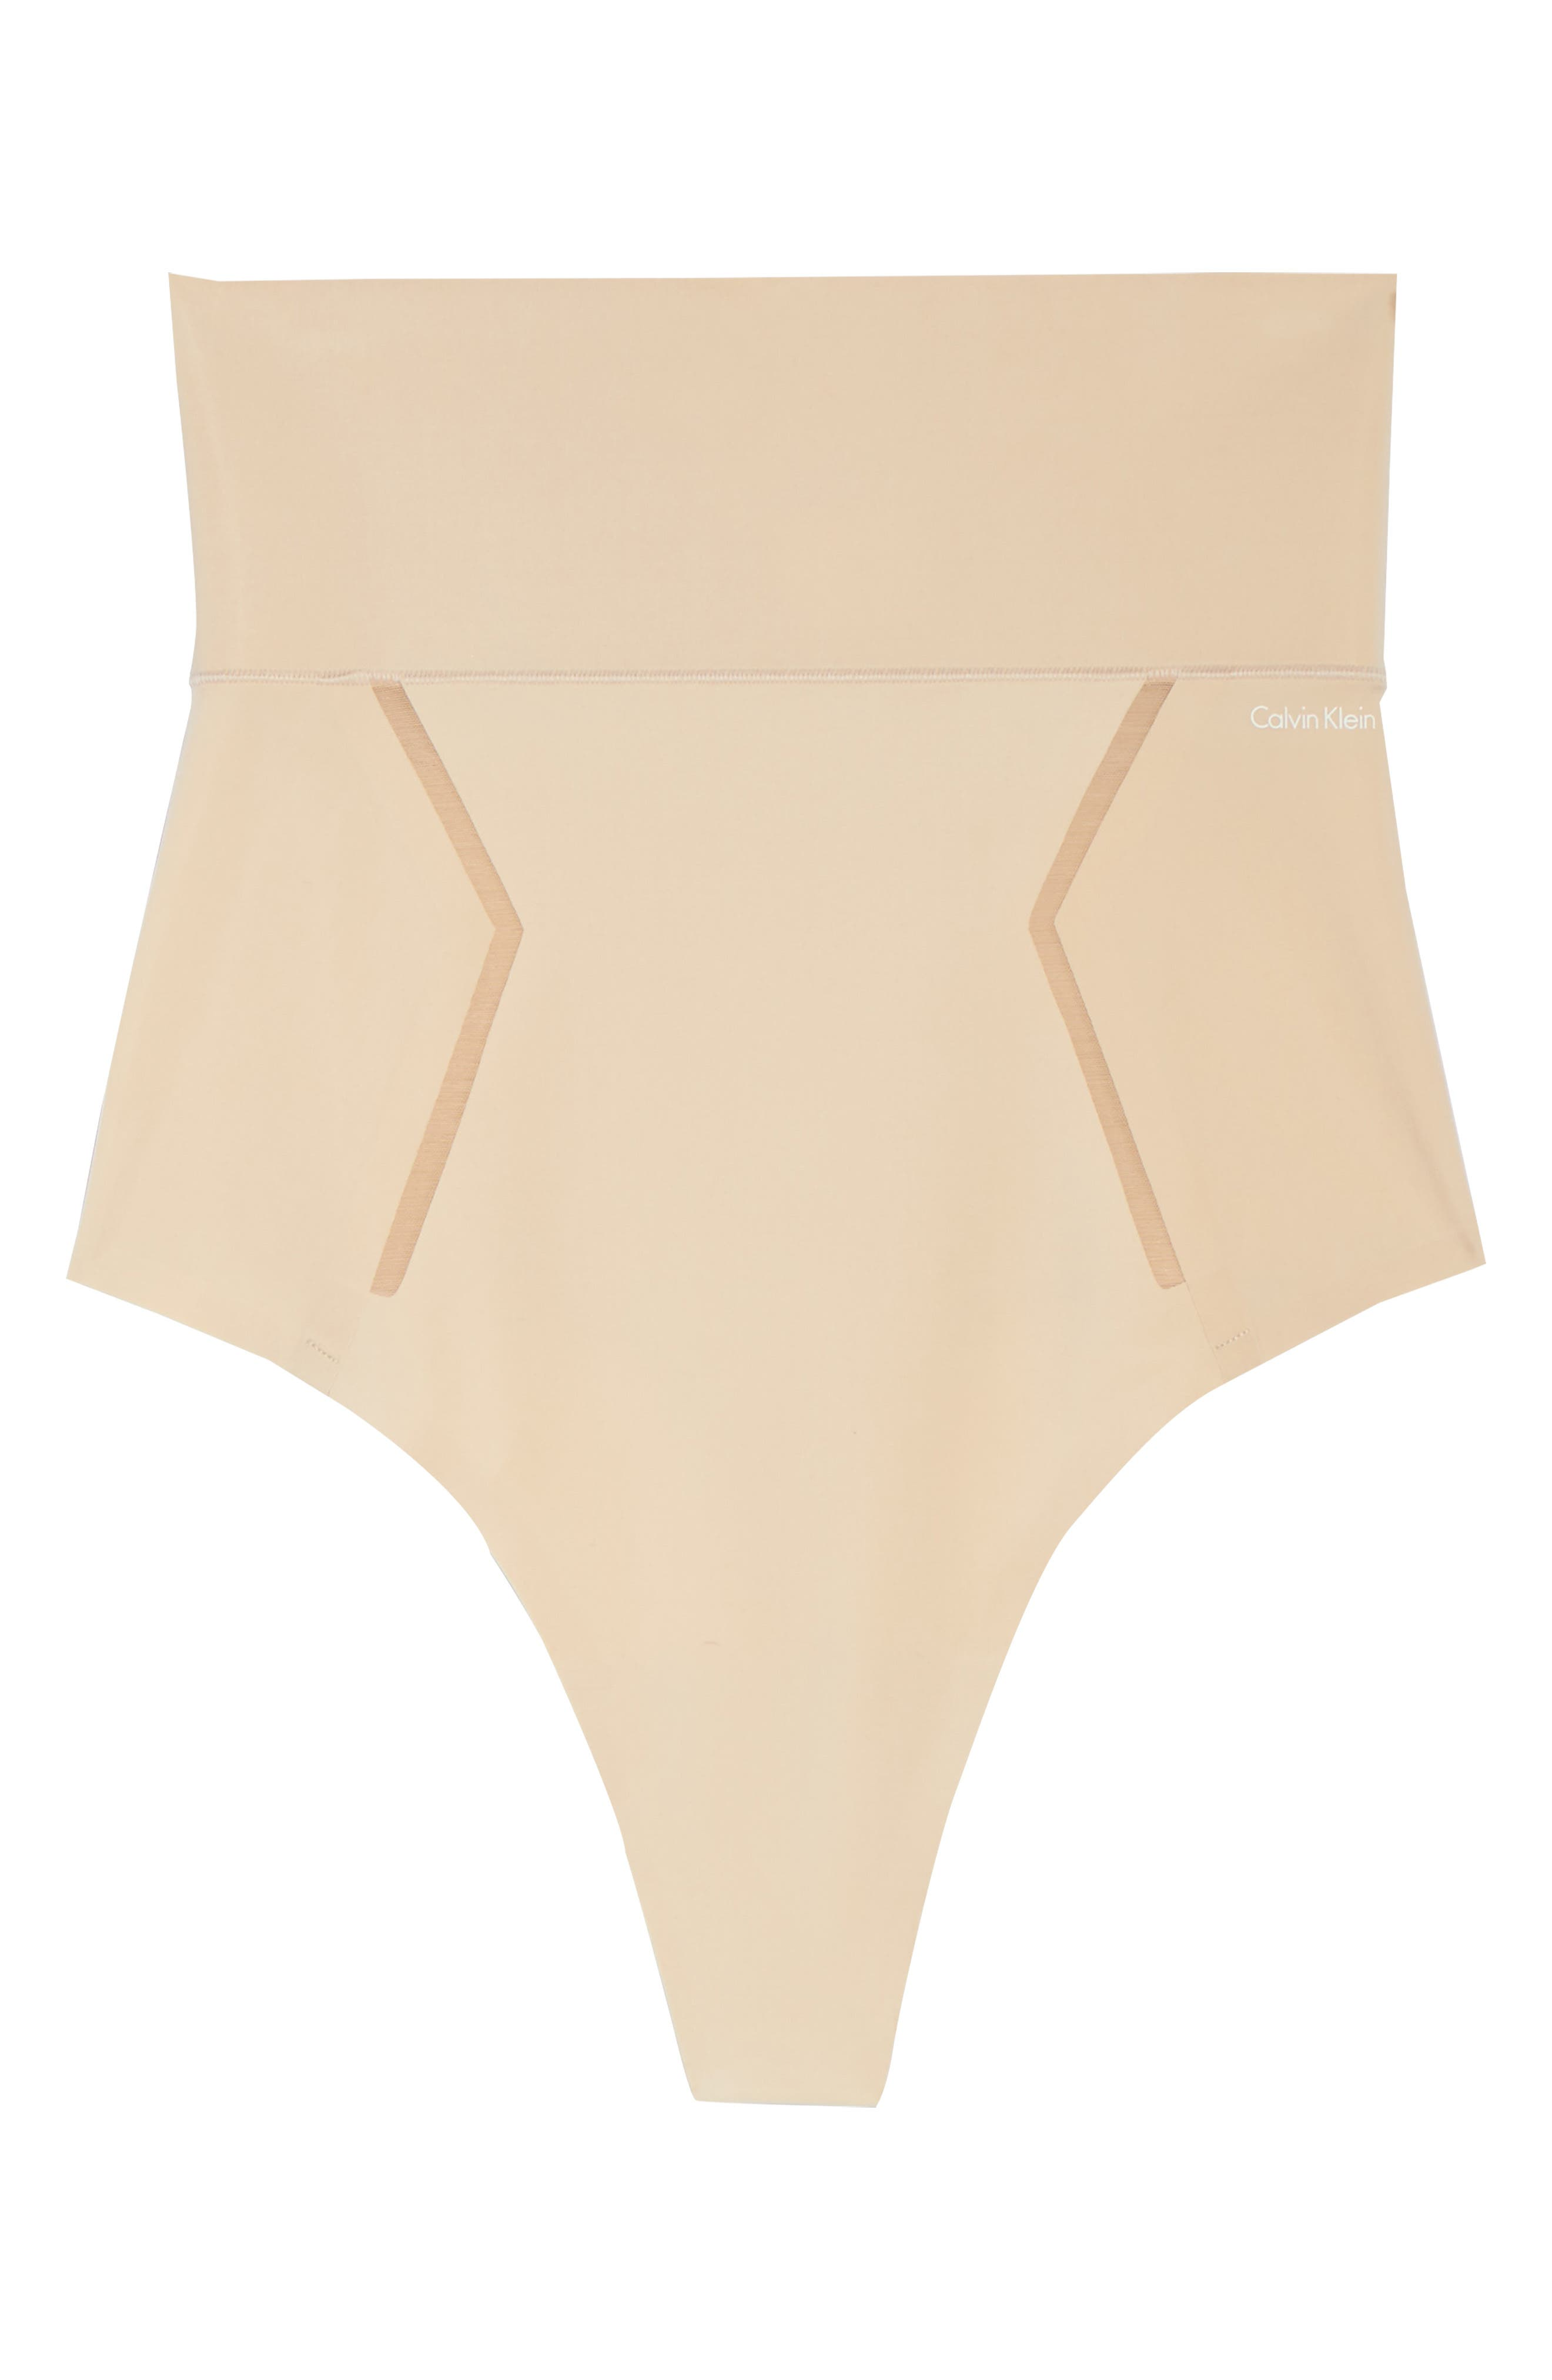 Sculpted Shapewear High Waist Thong,                             Alternate thumbnail 4, color,                             Bare